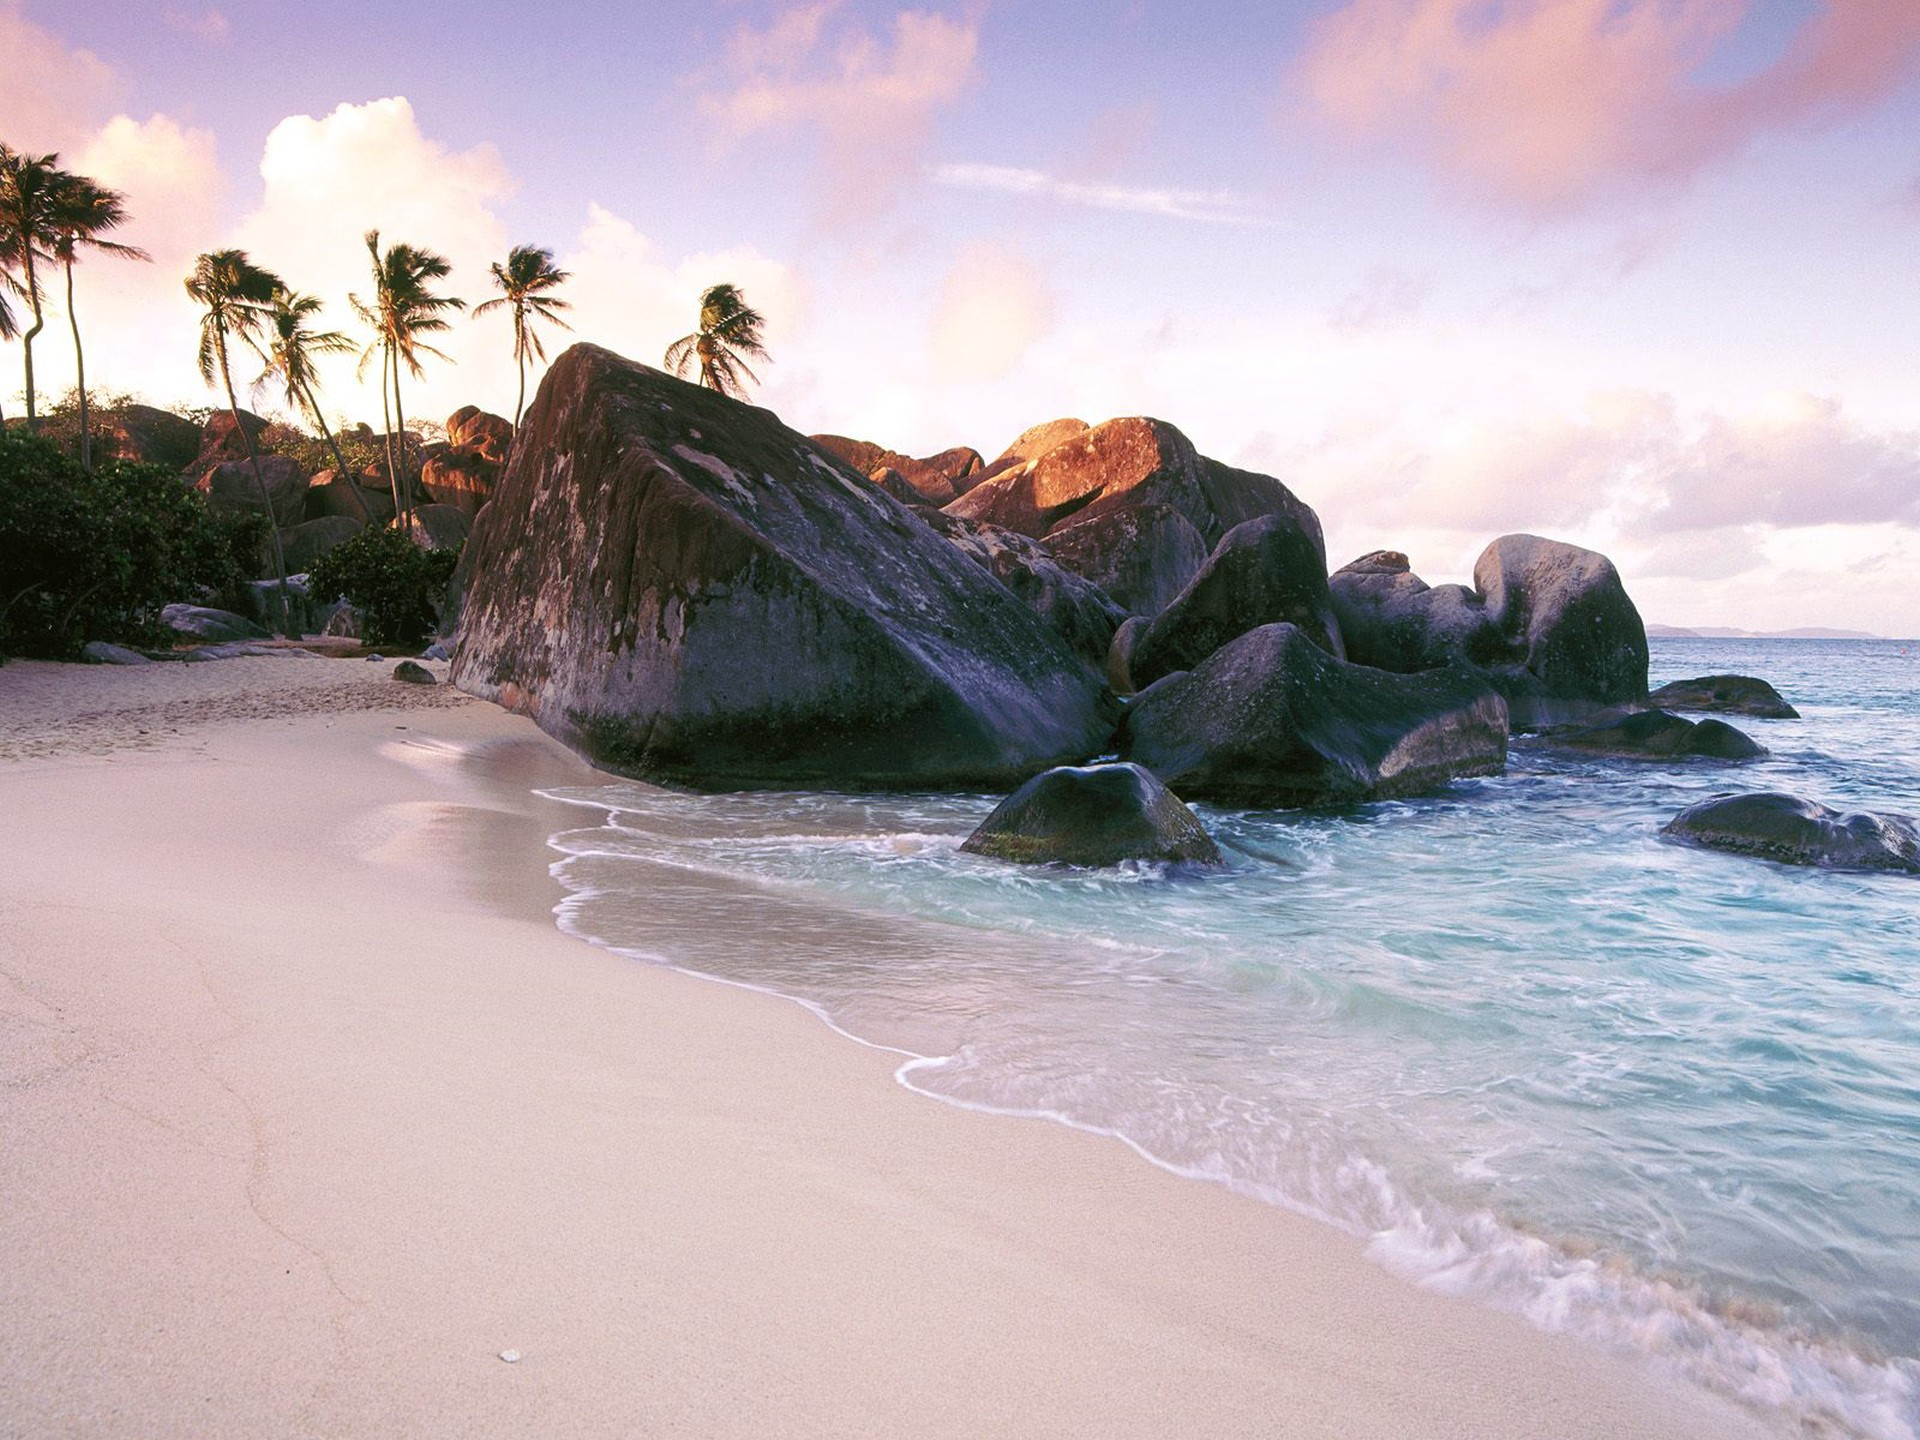 Caribbean_Nature_1920x1440_HD_Wallpapers_Pack_1-16.jpg_Virgin_Gorda_Island_at_Sunset_British_Virgin_